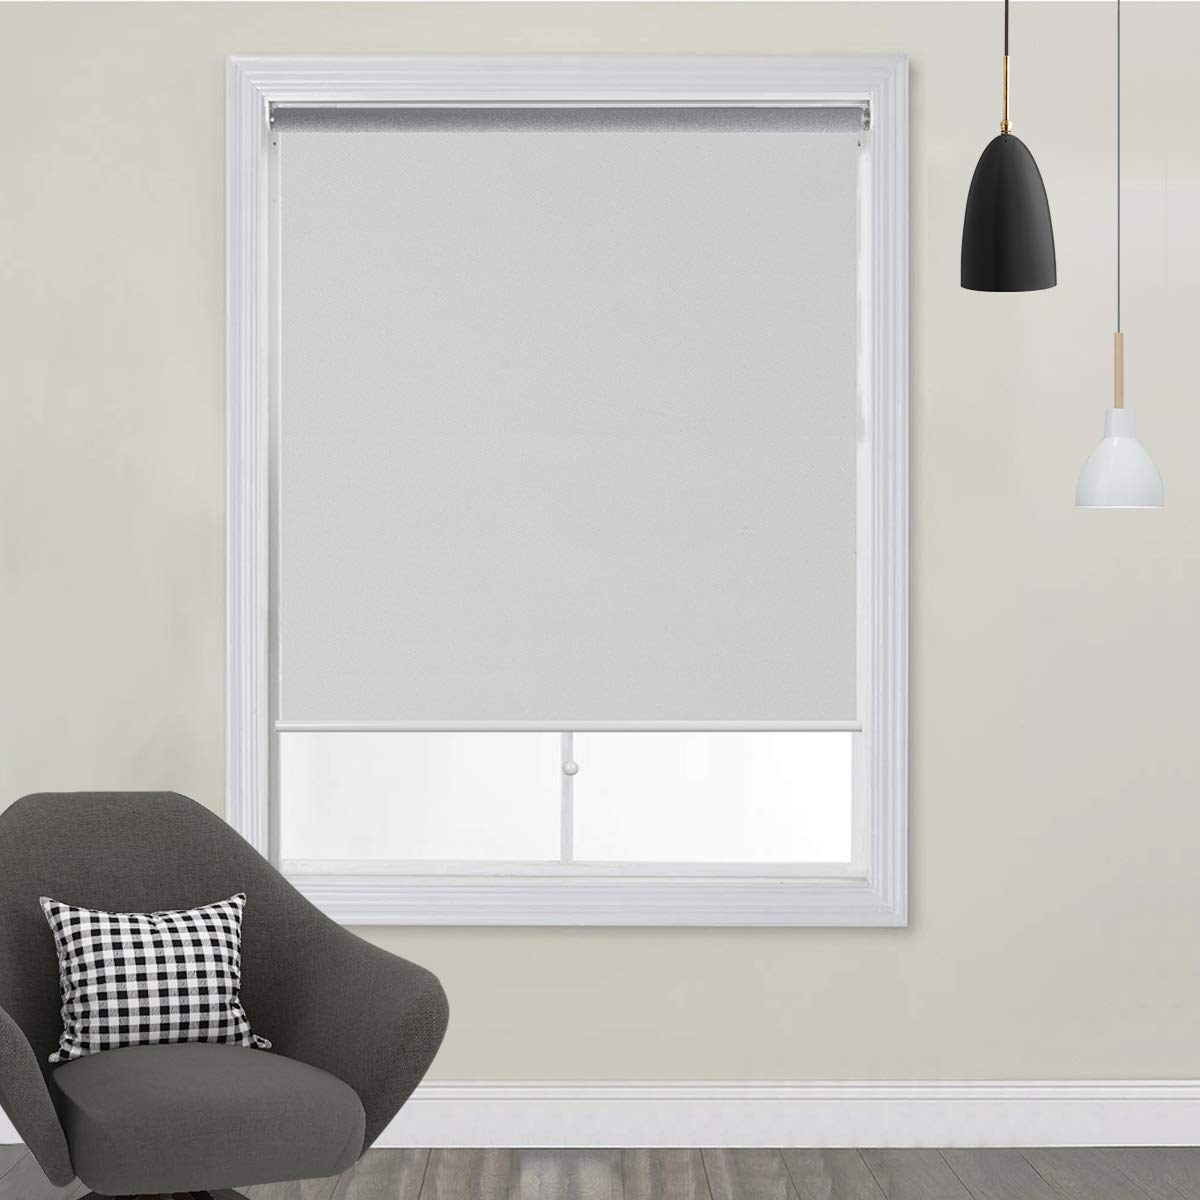 TFSKY Blackout Shades for Bedroom Outdoor Cordless Roller Blinds and Shades for Windows Blackout Window Blinds for Indoor & Outdoor Use, UV Protection with Spring System White, 48x72 by TFSKY